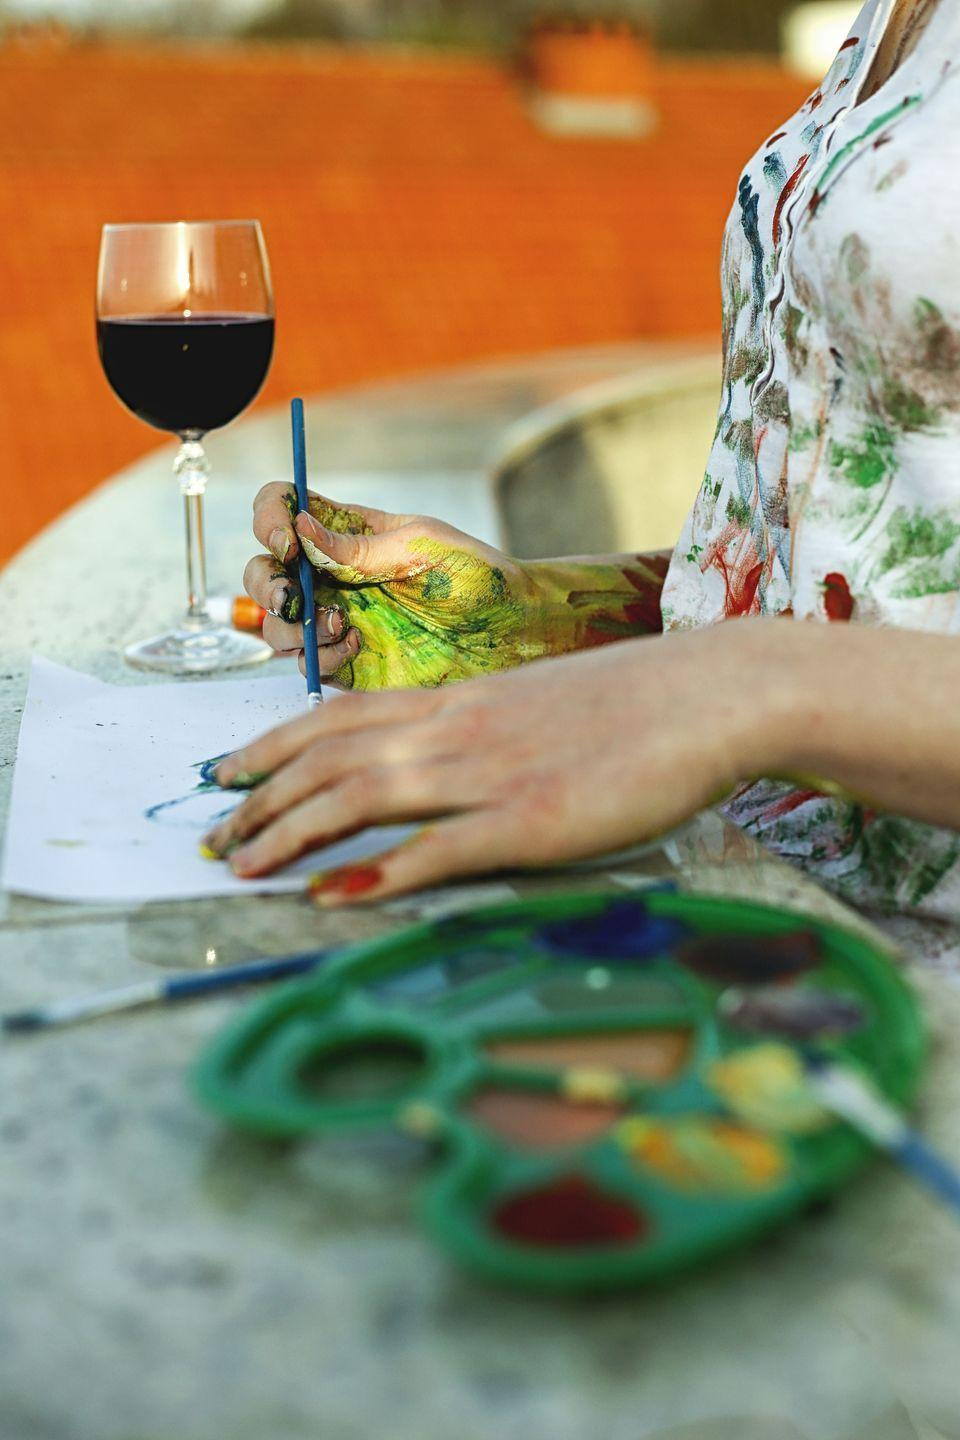 "<p>Use this milestone moment to inspire creativity in your life. To channel it, sign up for a traditional art class, pottery class, or wine and paint night with your friends. Whichever you choose, you're sure to have a great time.</p><p><a class=""link rapid-noclick-resp"" href=""https://go.redirectingat.com?id=74968X1596630&url=https%3A%2F%2Fwww.walmart.com%2Fip%2FU-S-Art-Supply-75ml-Acrylic-12-Color-Paint-Extra-Large-Tube-Artist-Painting-Set%2F853233139&sref=https%3A%2F%2Fwww.thepioneerwoman.com%2Fhome-lifestyle%2Fentertaining%2Fg34192298%2F50th-birthday-party-ideas%2F"" rel=""nofollow noopener"" target=""_blank"" data-ylk=""slk:SHOP PAINTING SETS"">SHOP PAINTING SETS</a></p>"